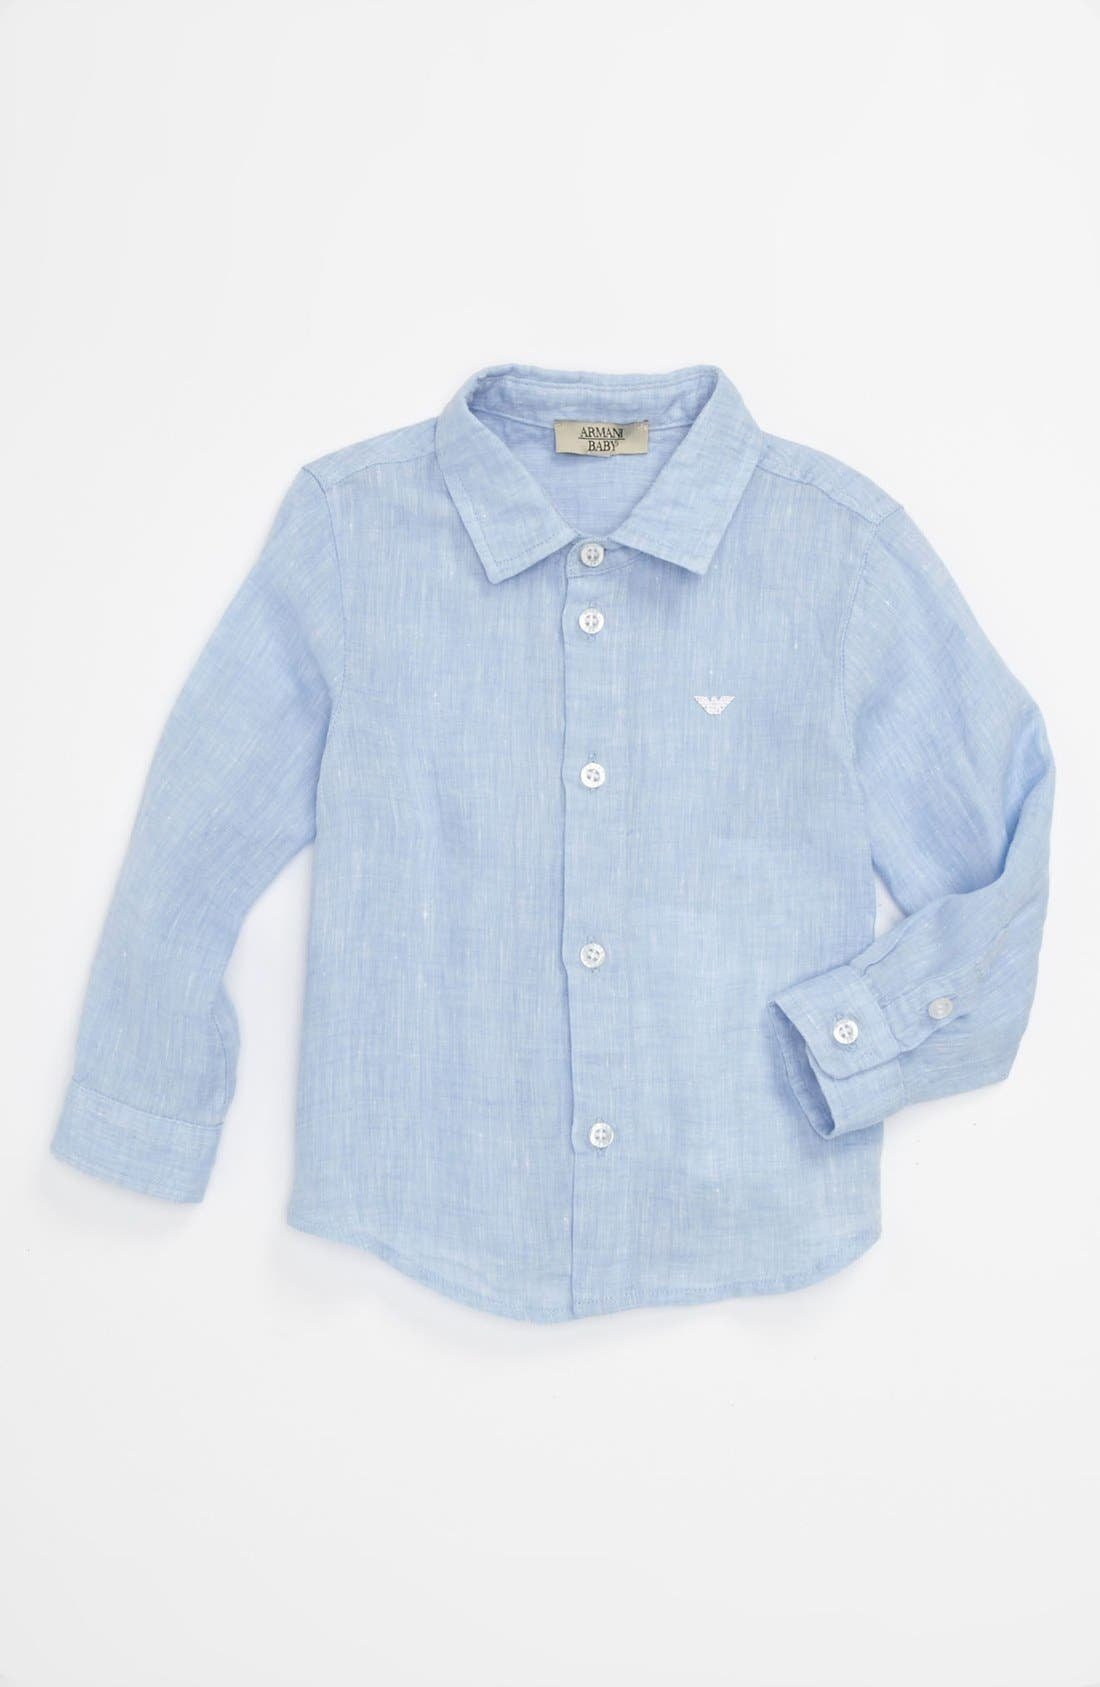 Main Image - Armani Junior Chambray Sport Shirt (Baby)